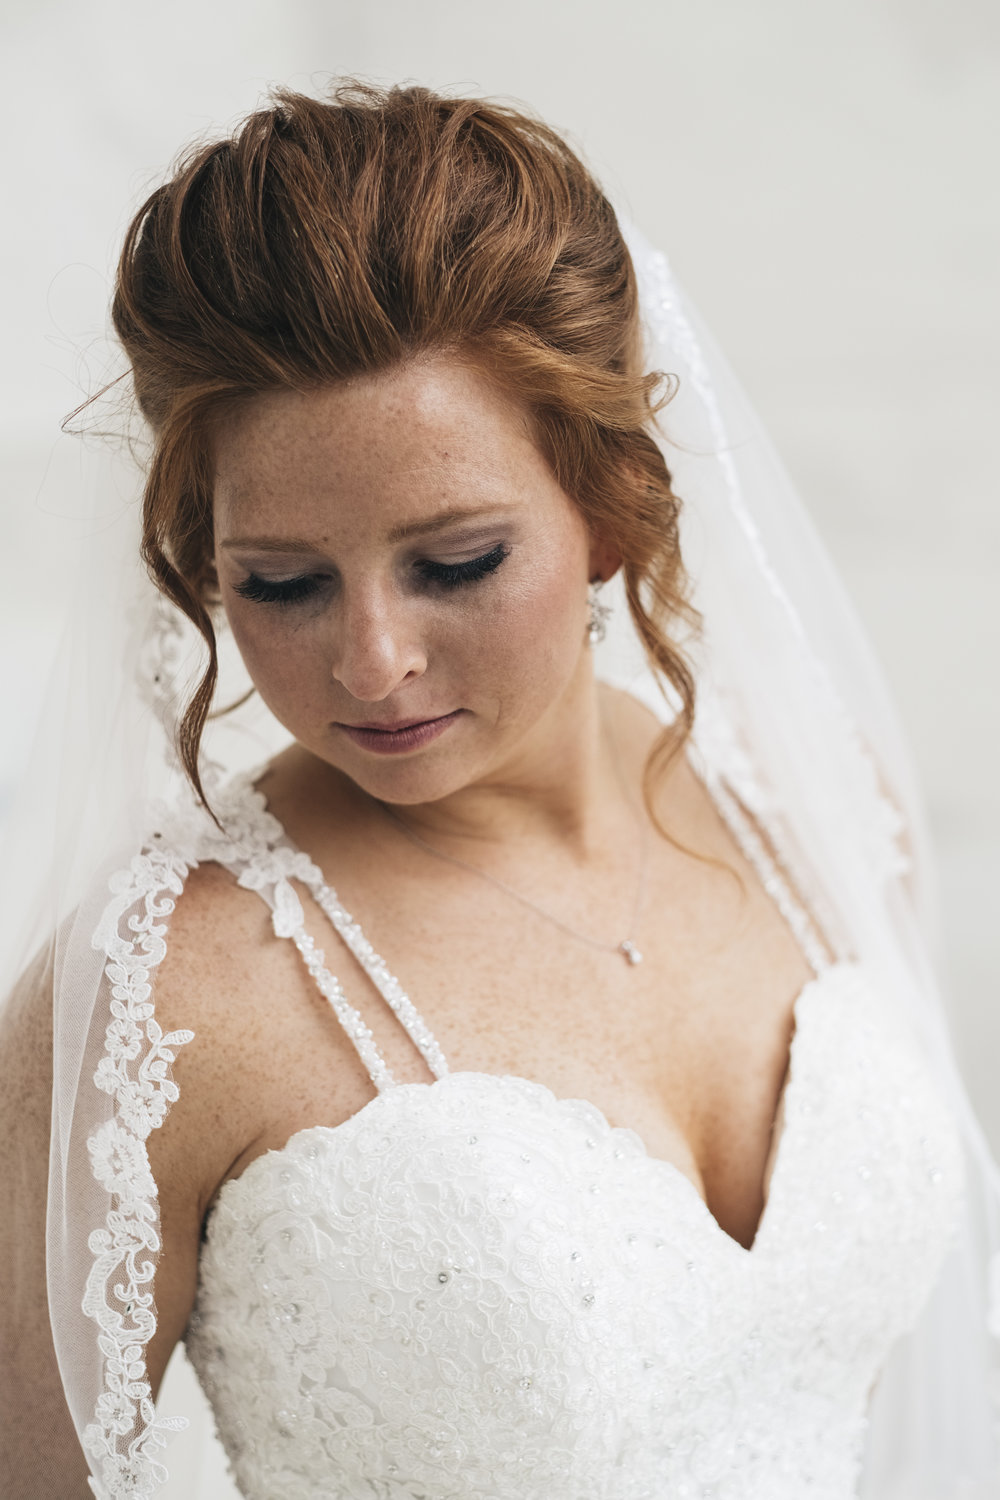 Bride on Wedding Day in Dress with Wedding Photographers from Toledo Ohio